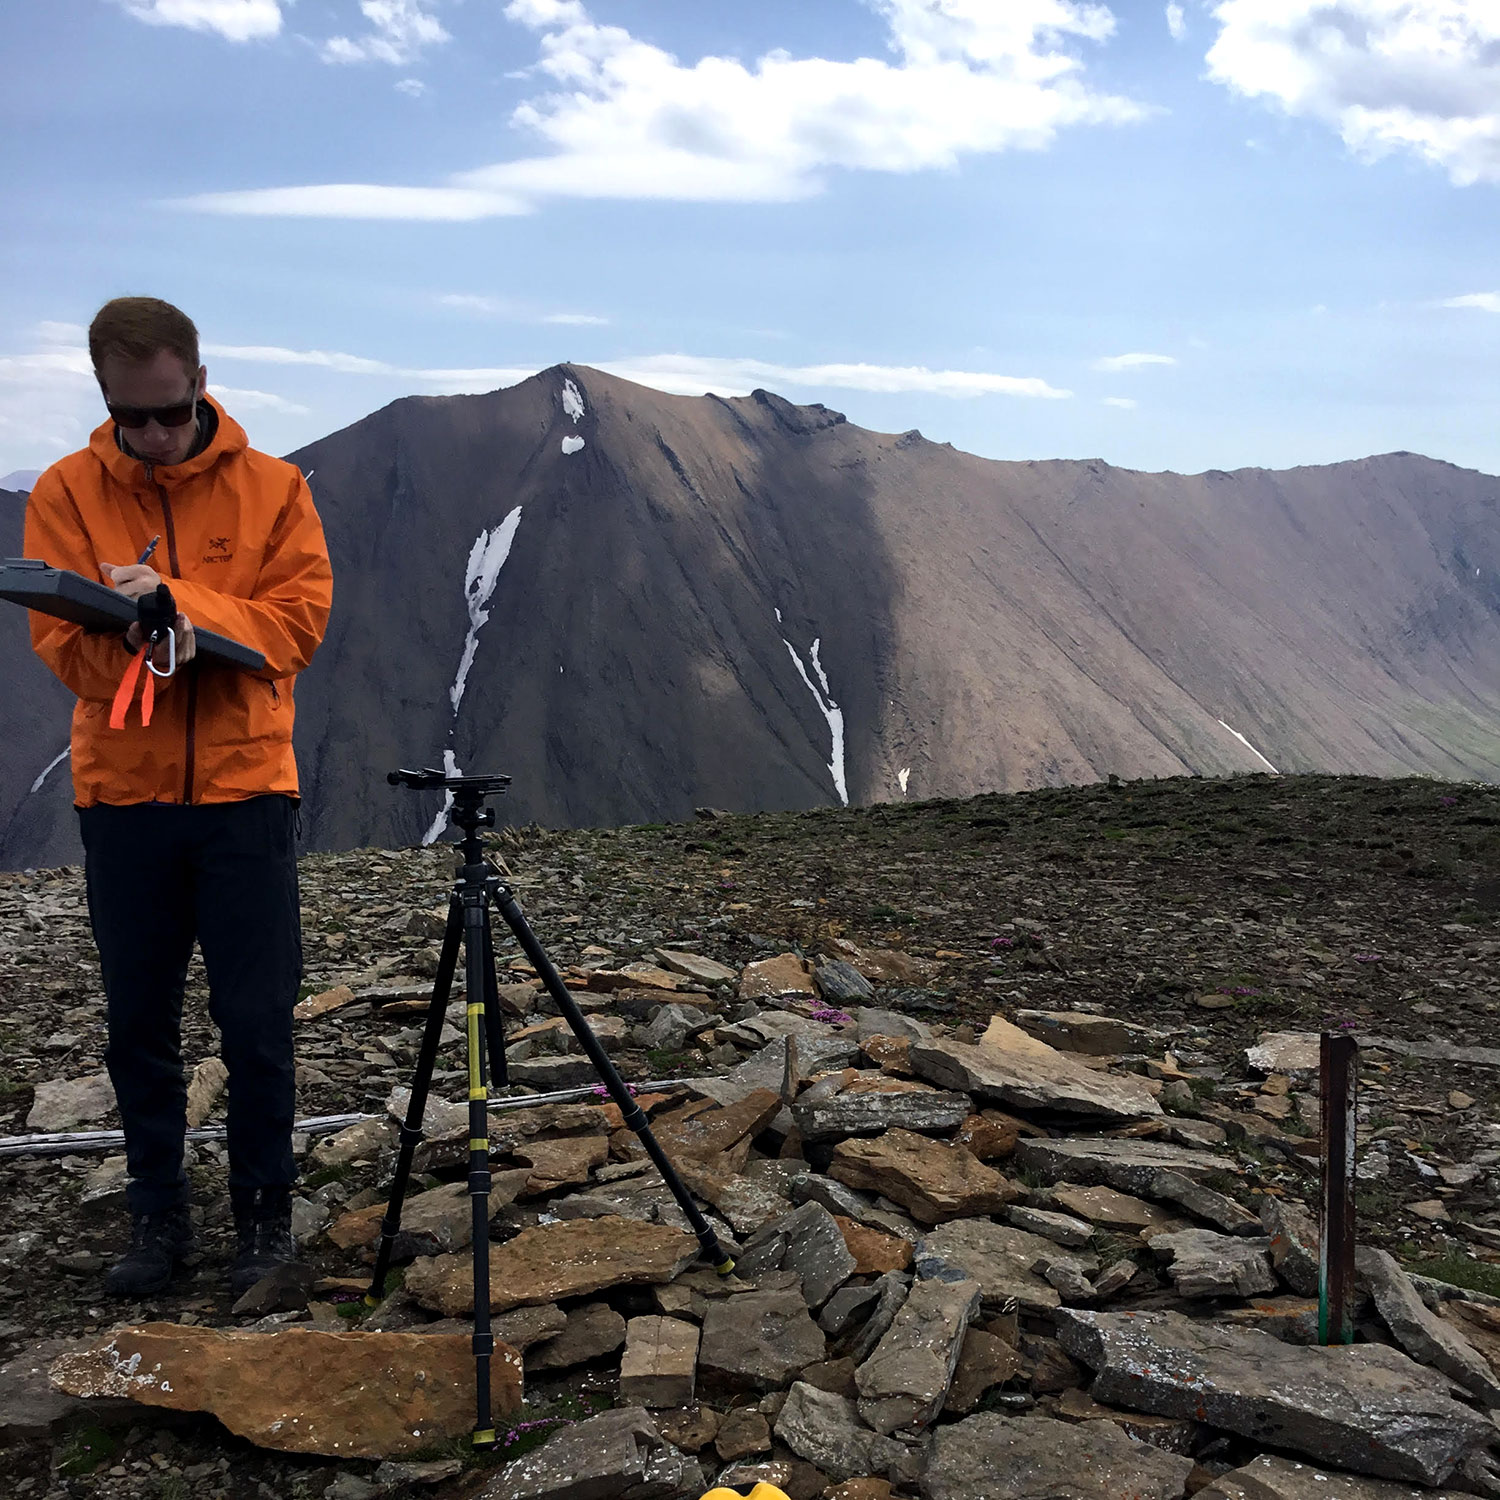 Karson Sudlow captures some notes at a repeat photography location he visited during the 2017 field season. Photo courtesy Karson Sudlow.